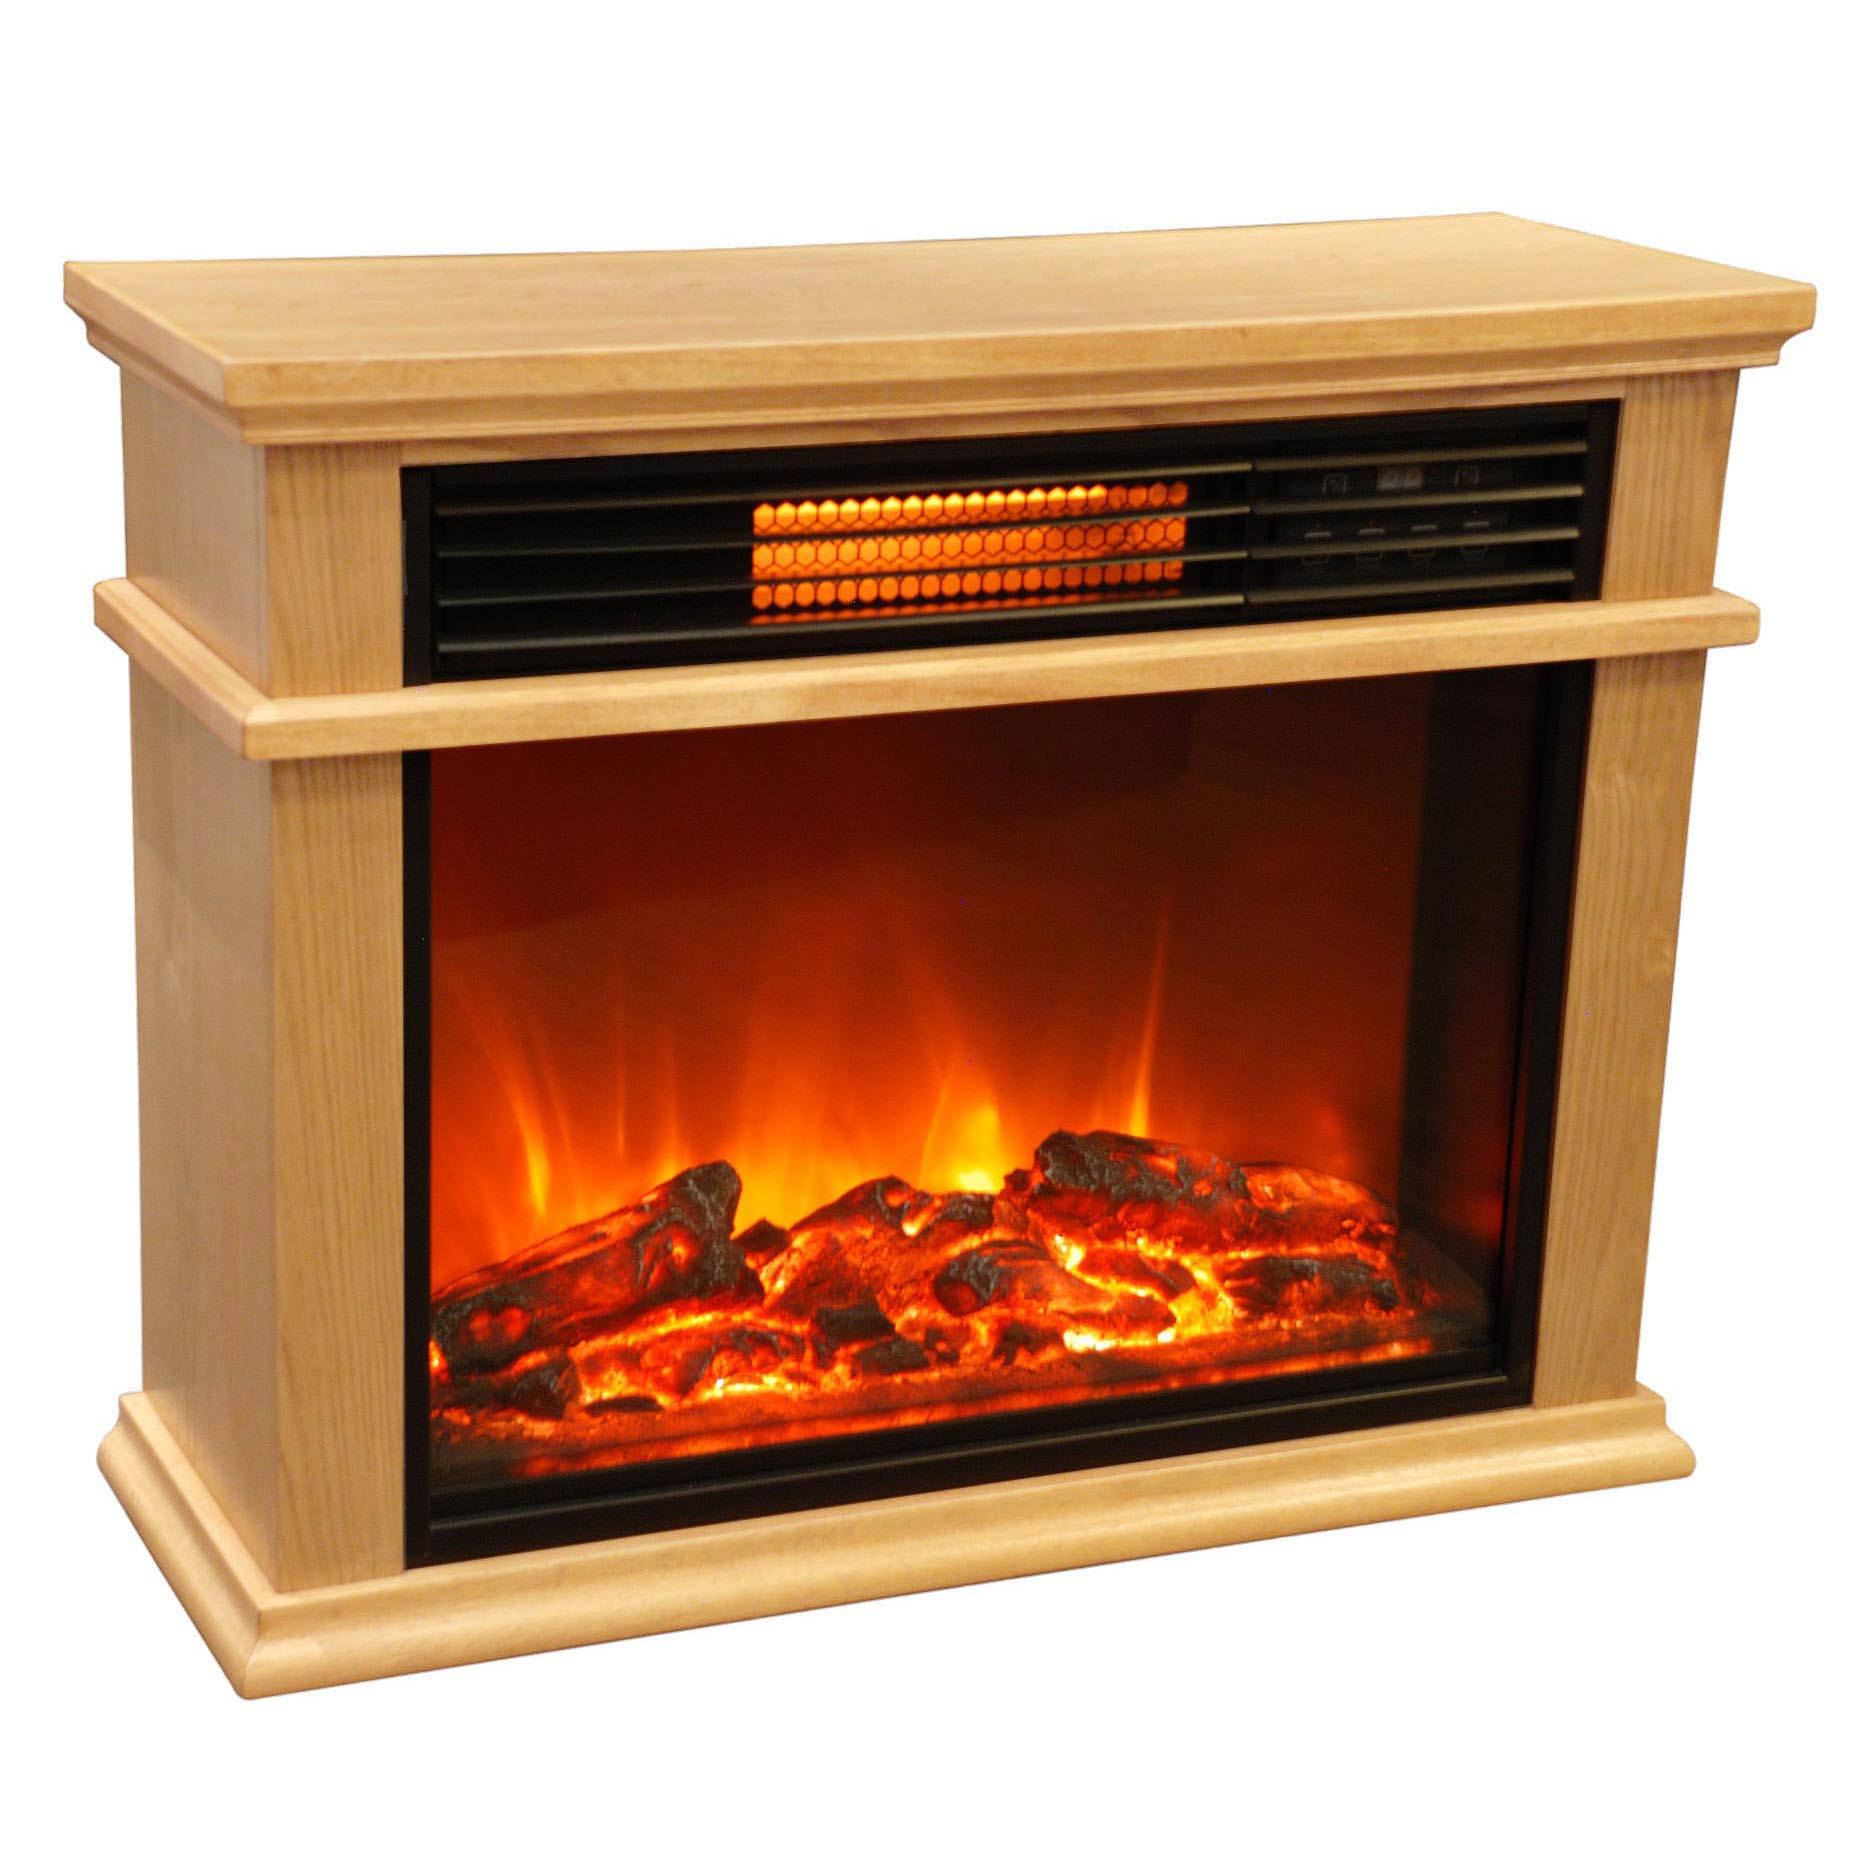 Lifesmart Large Room Infrared Quartz Fireplace Fireplace